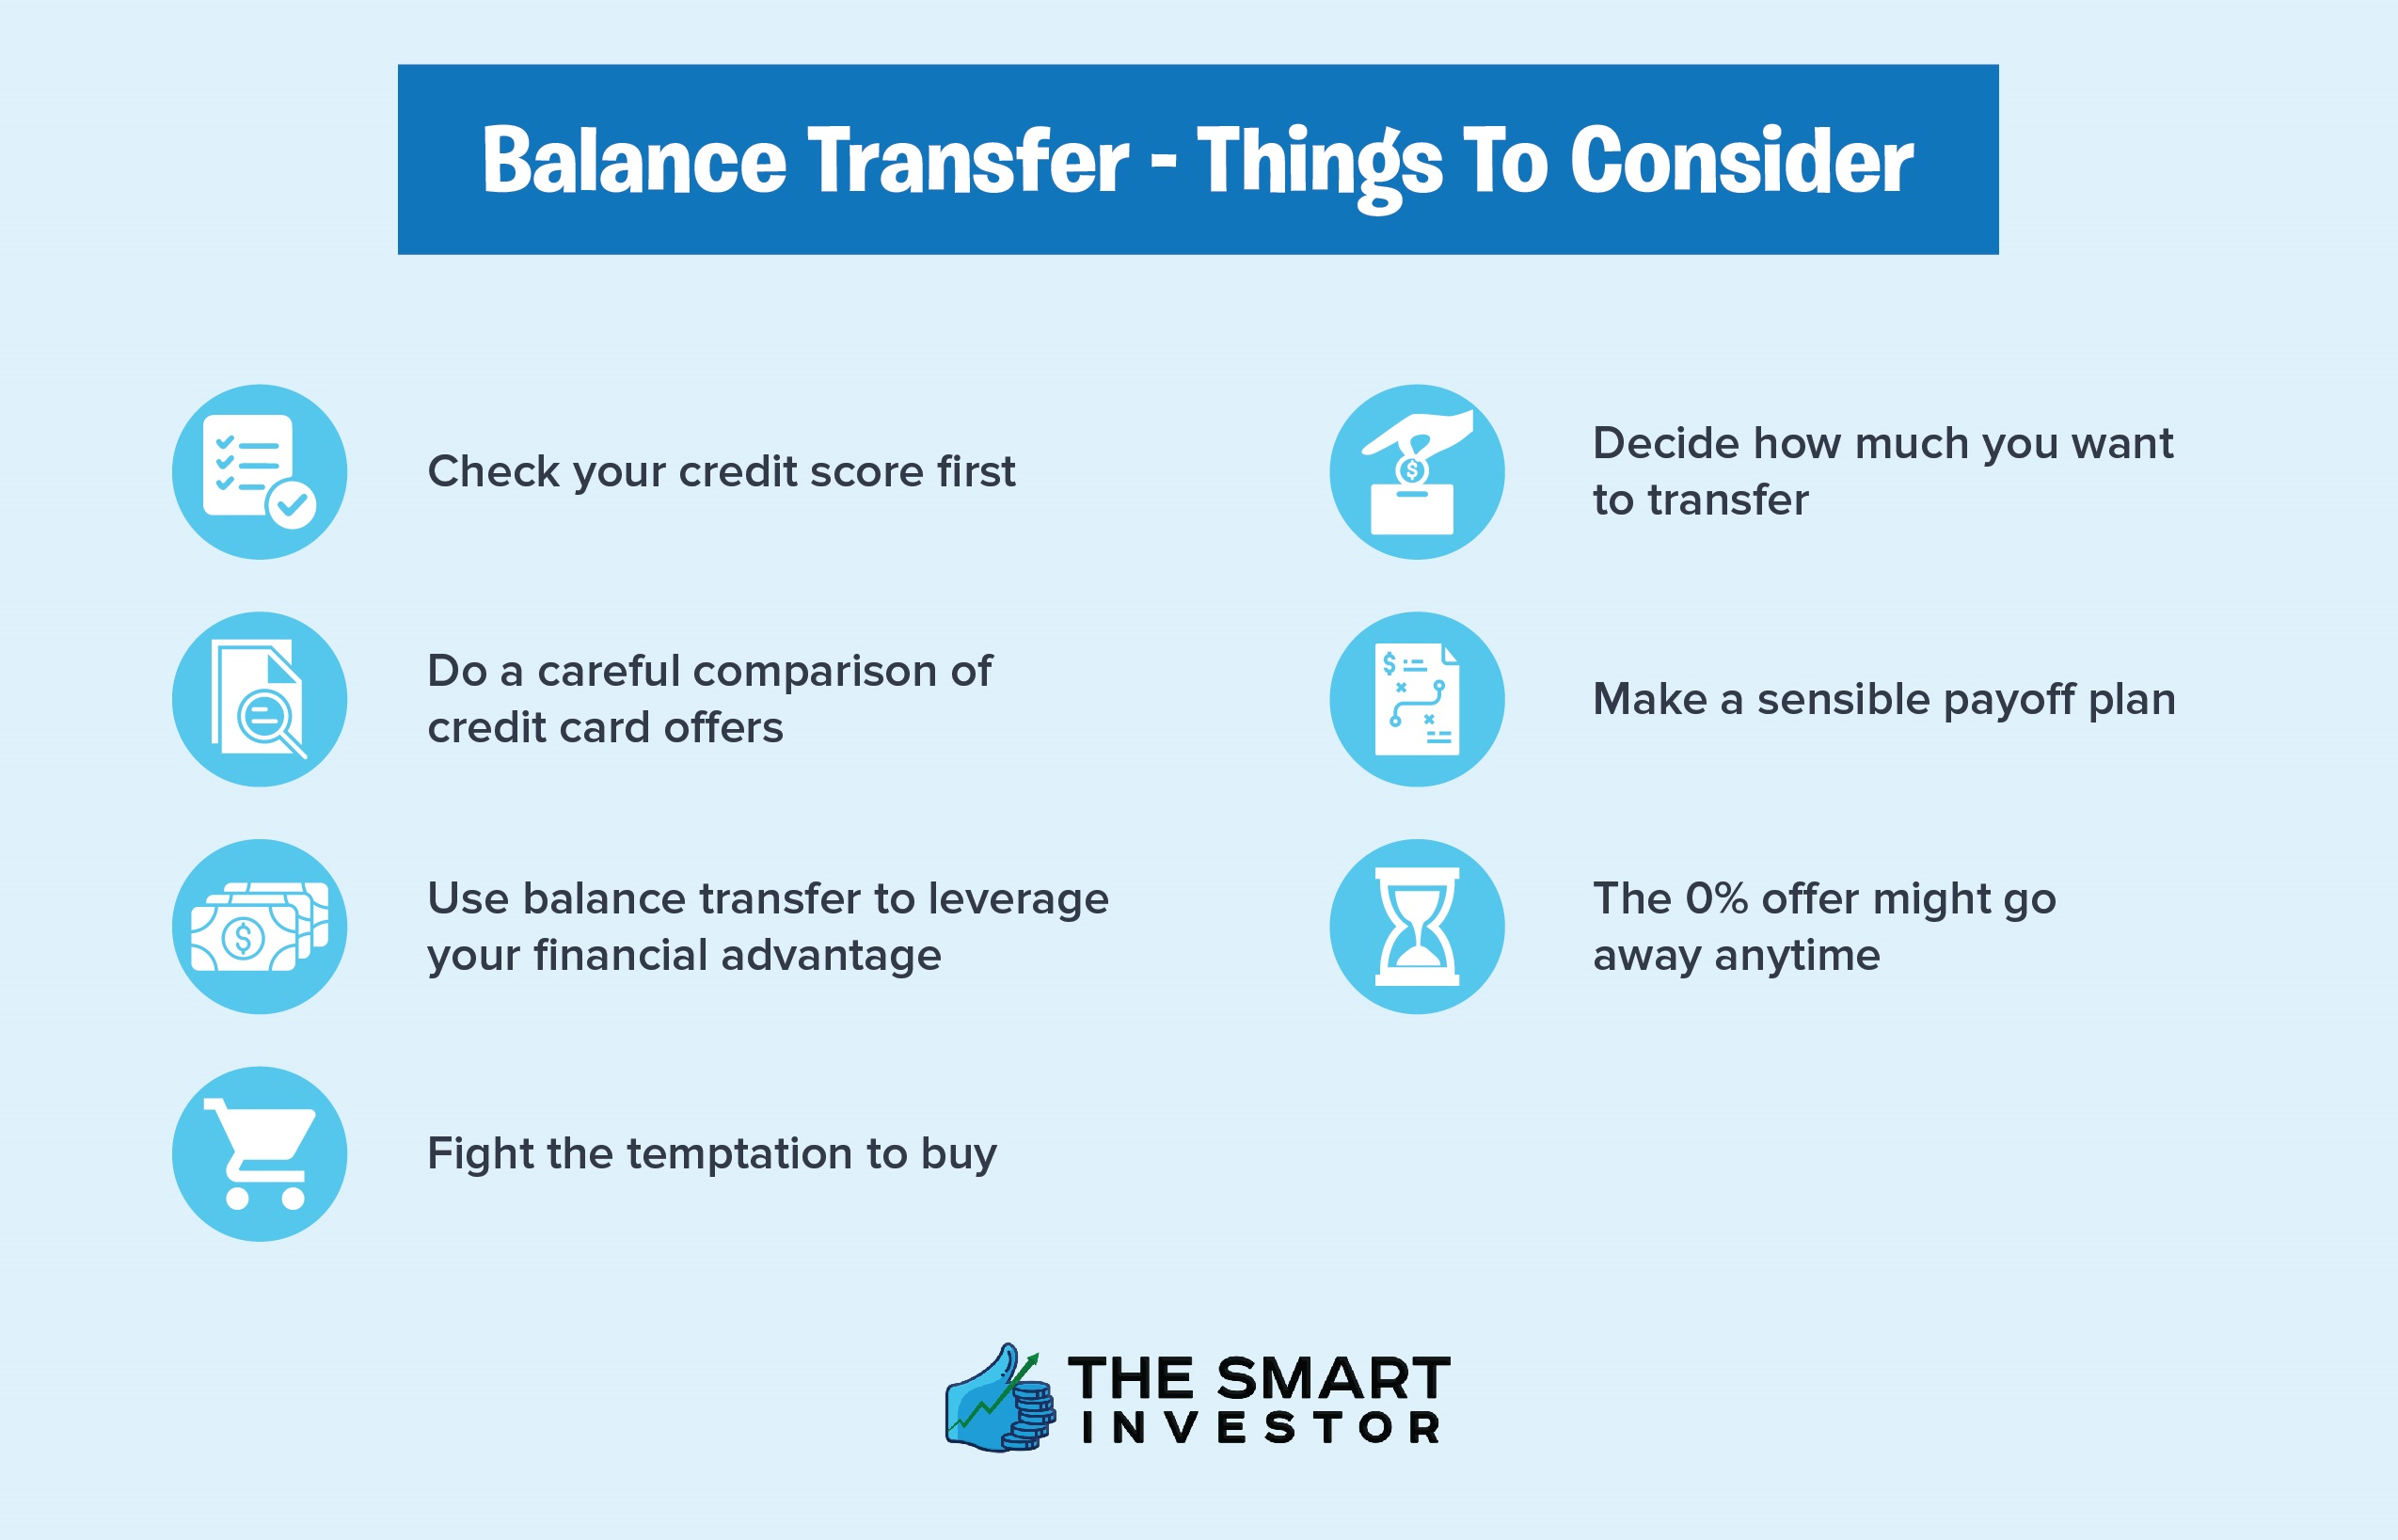 balance transfer - things to consider